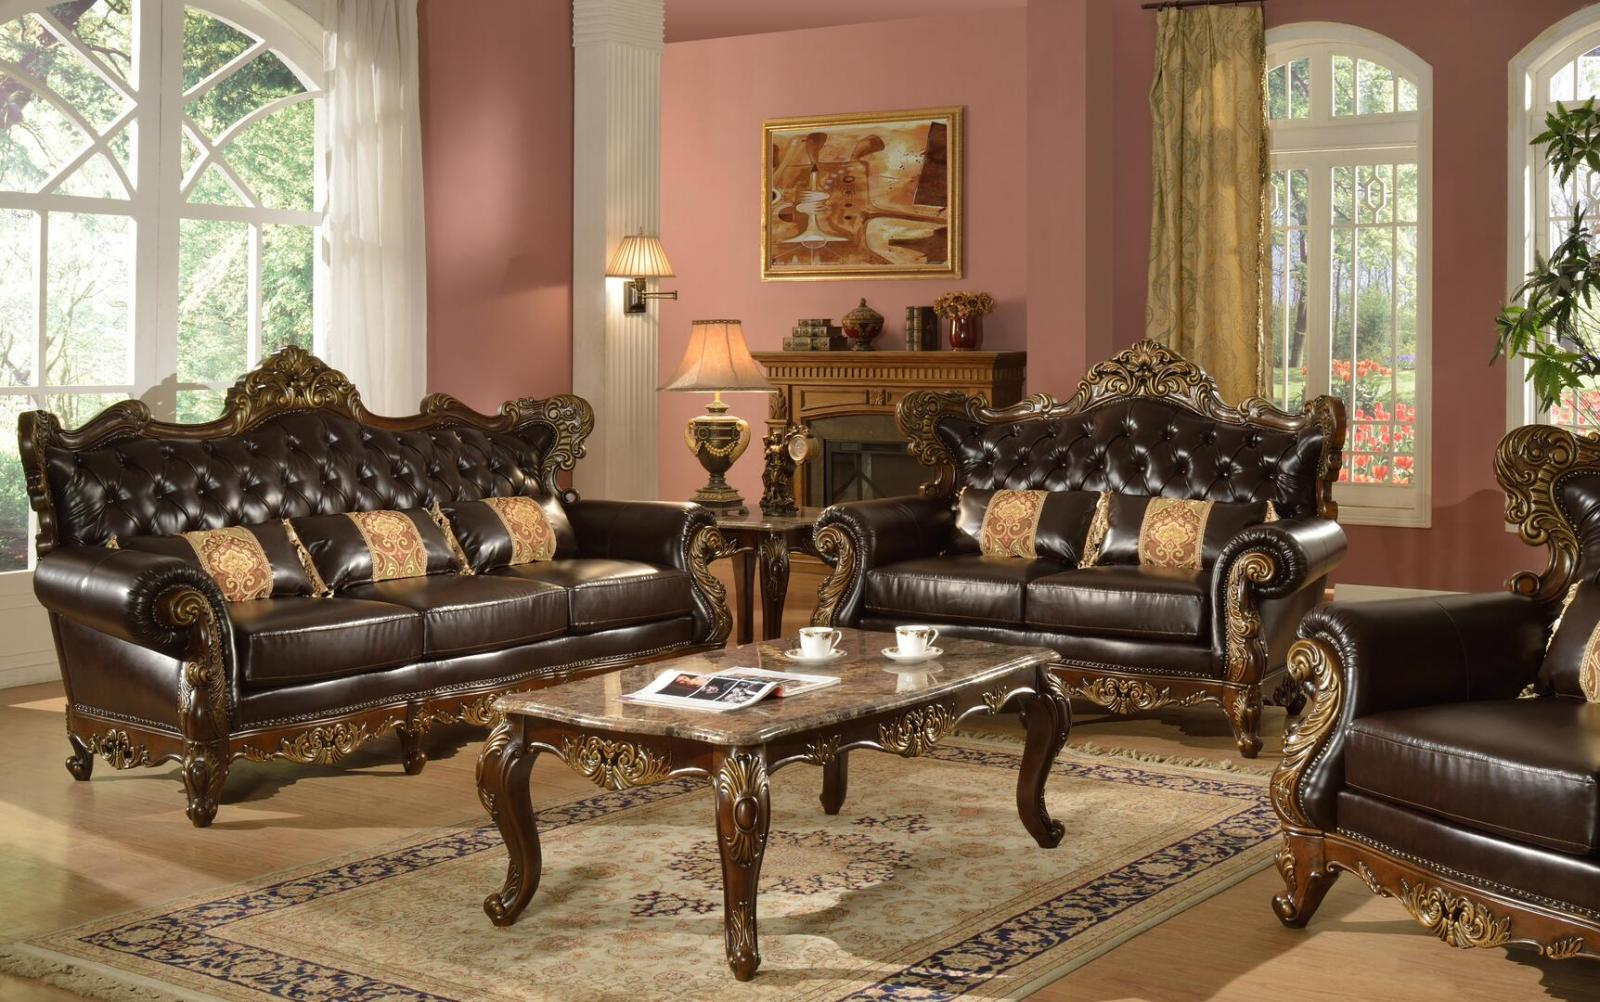 Traditional Cherry Faux Leather Sofa Loveseat Chair and Coffee Table 4 pcs Cosmos Furniture Britney-Set-4